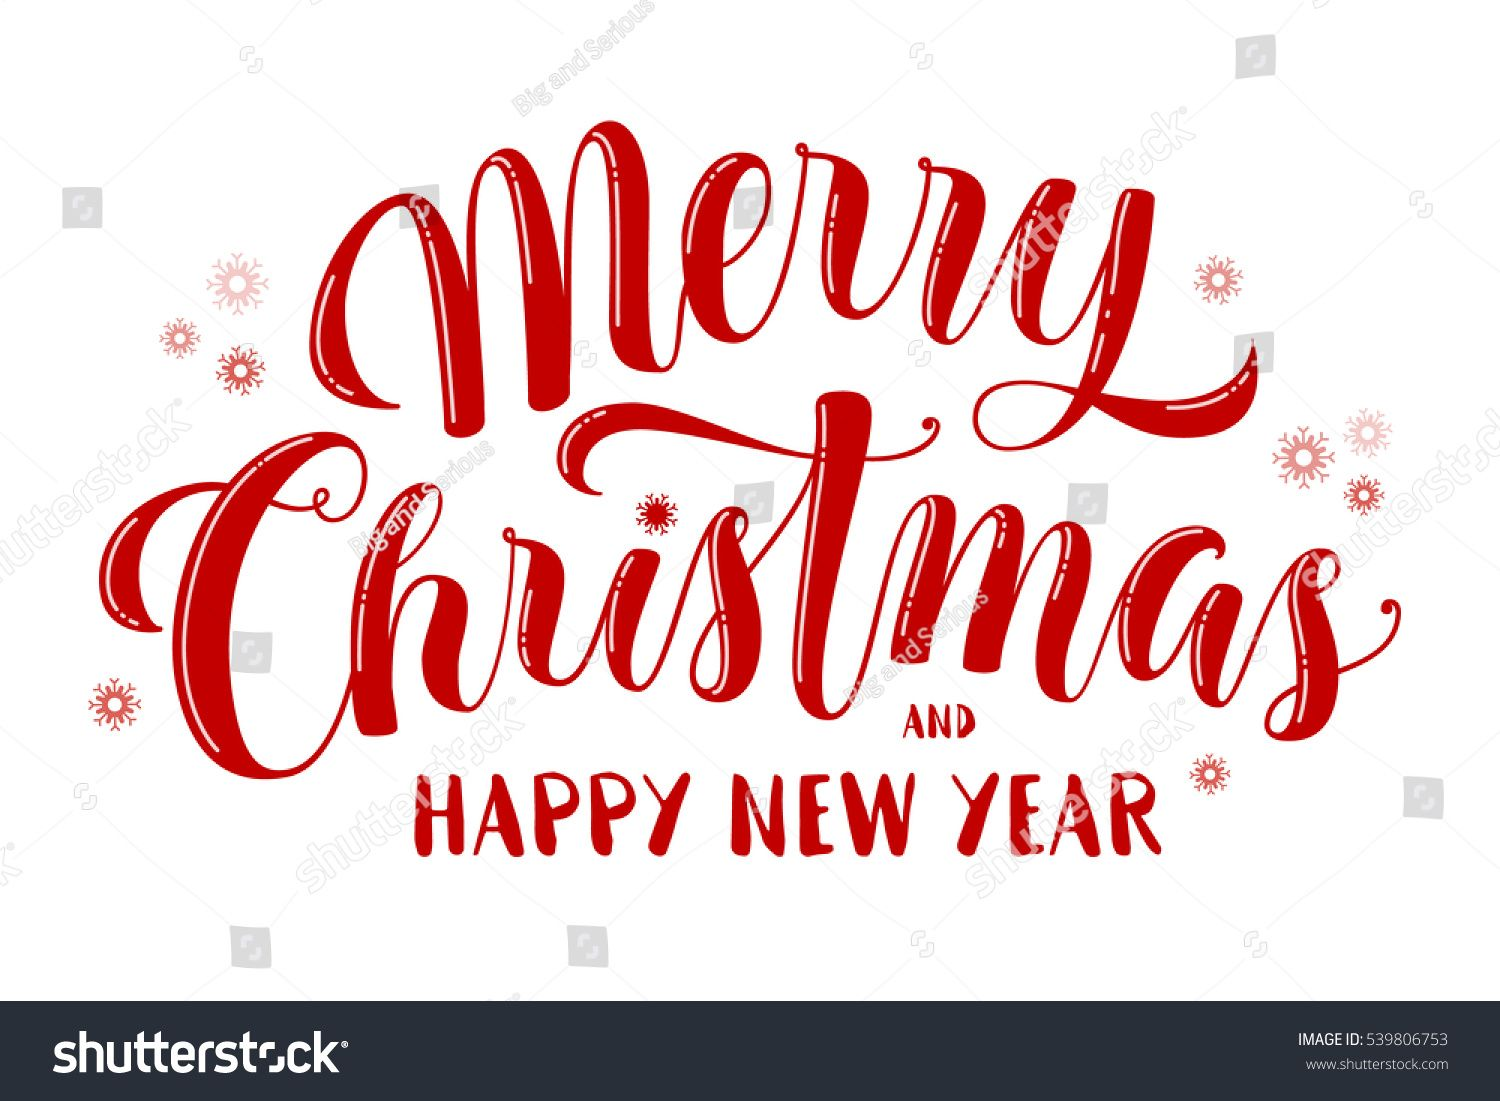 Merry Christmas And Happy New Year Text Lettering For Greeting Cards Banner Happy New Year Text Happy New Year Calligraphy Merry Christmas And Happy New Year